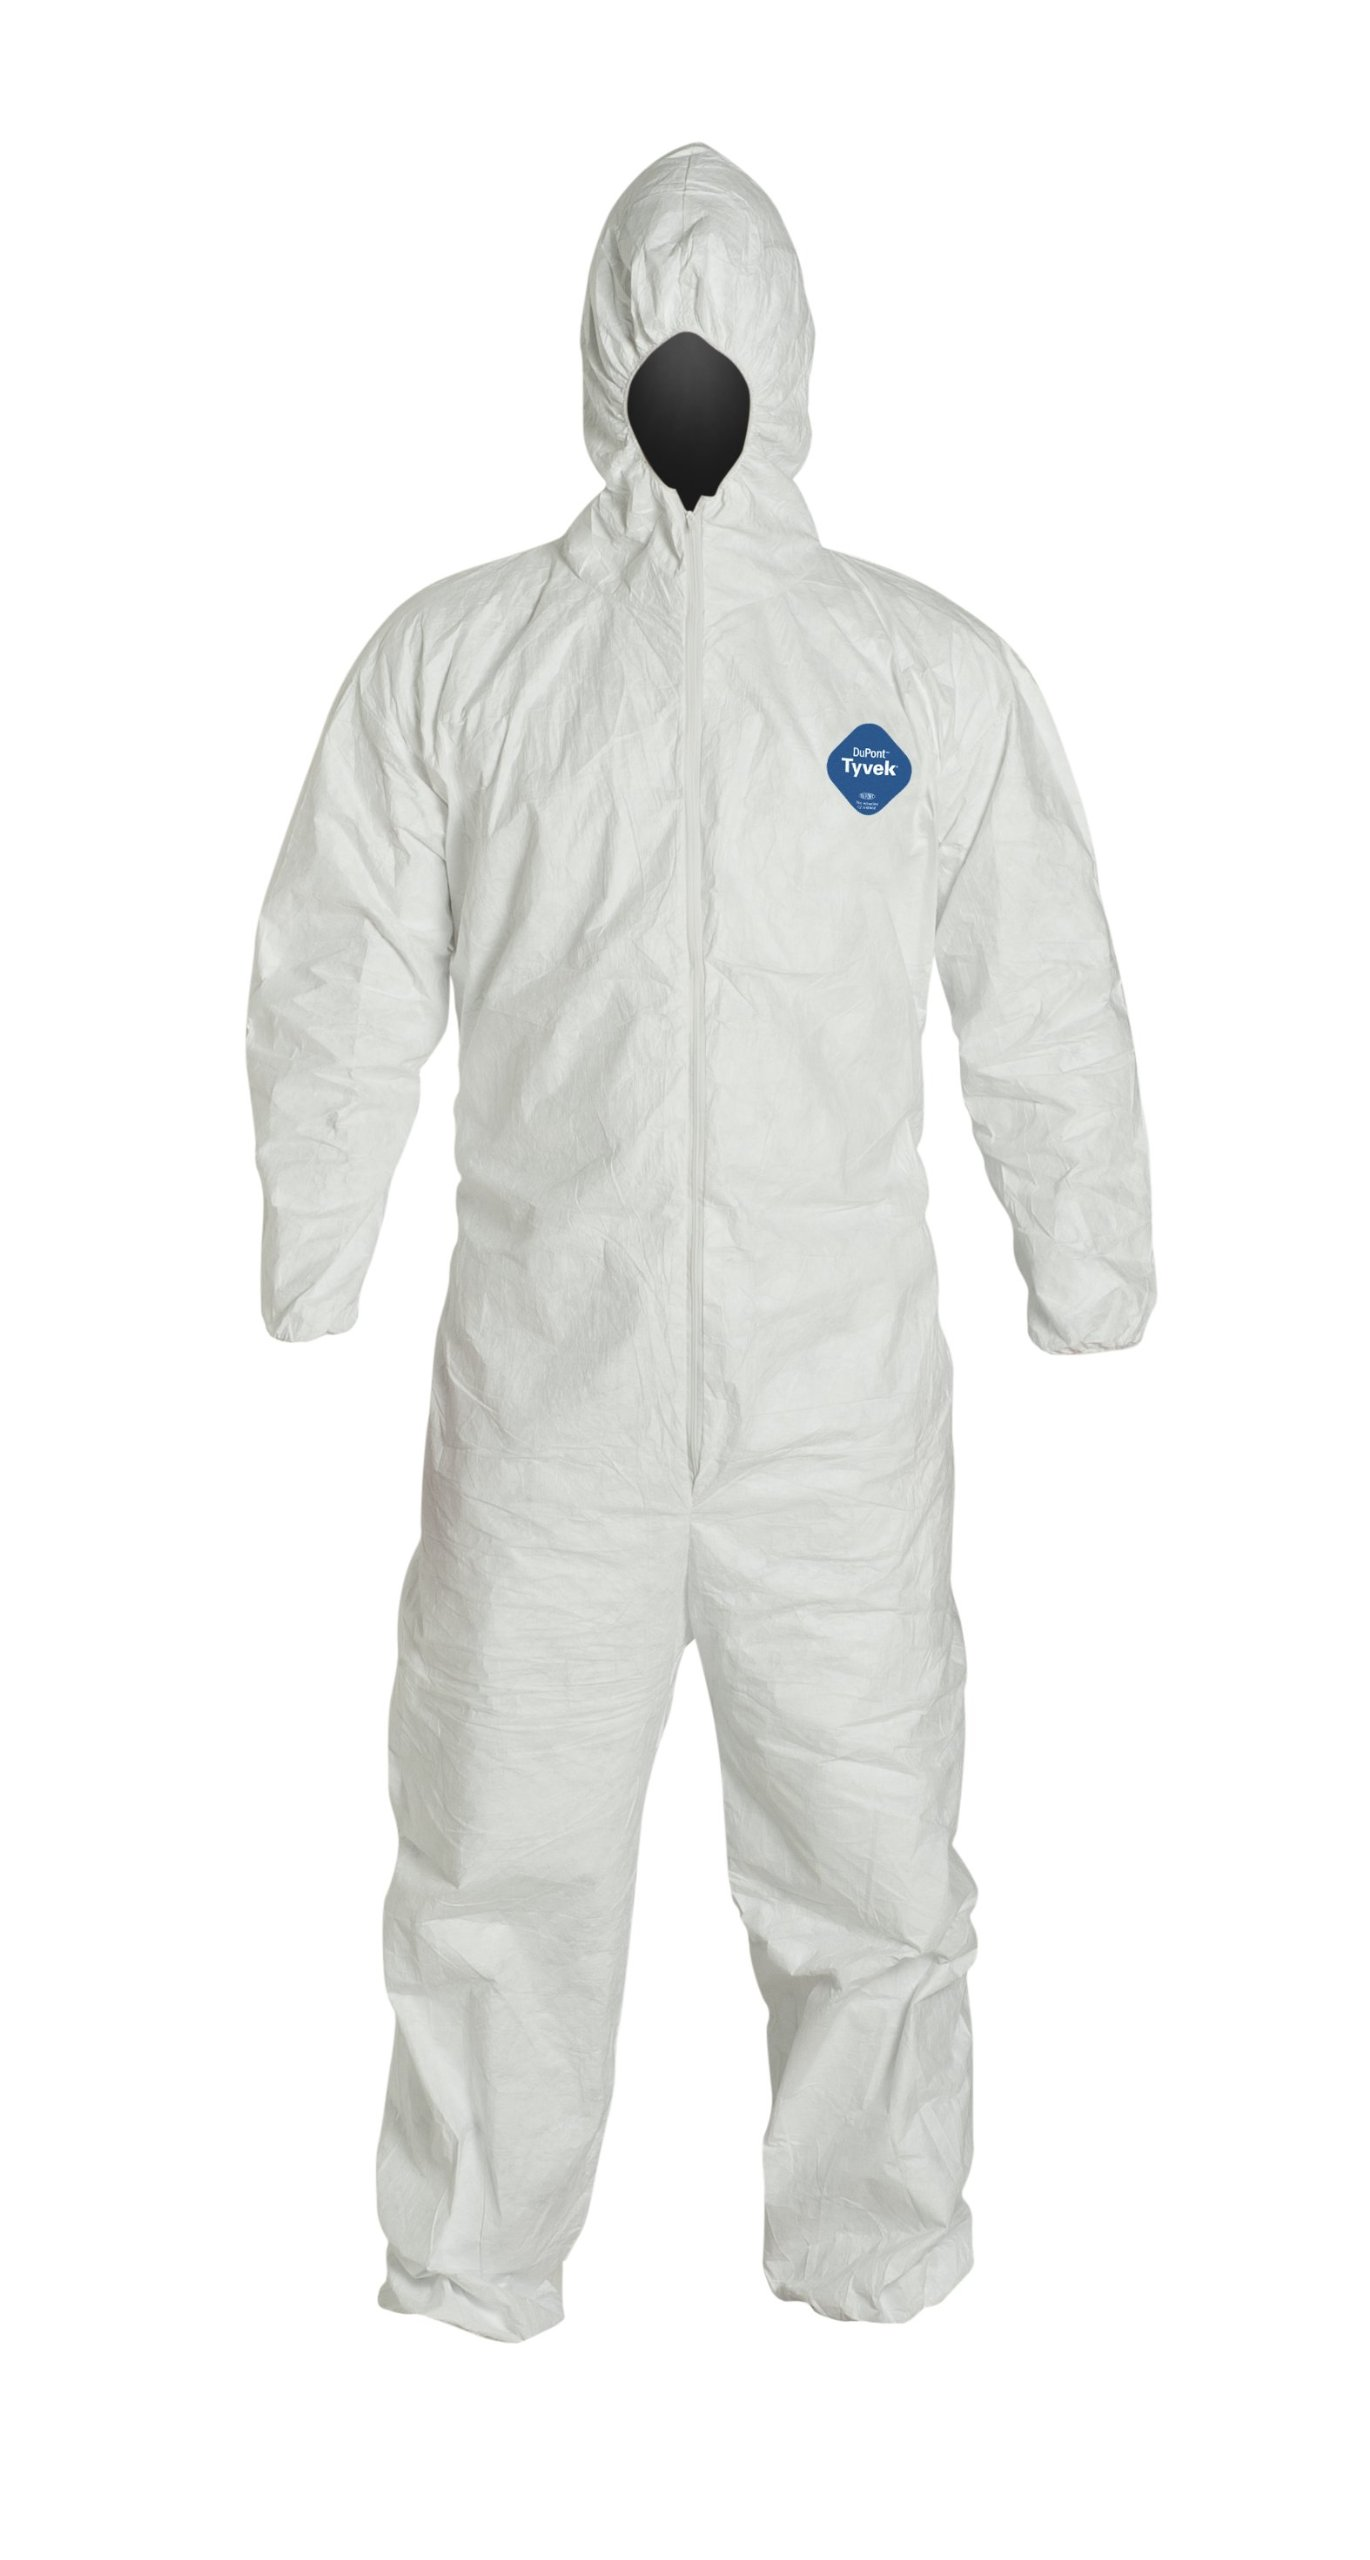 DuPont Tyvek 400 TY127S  Protective Coverall with Hood, Disposable, Elastic Cuff, White, X-Large (Pack of 25) by DuPont (Image #2)